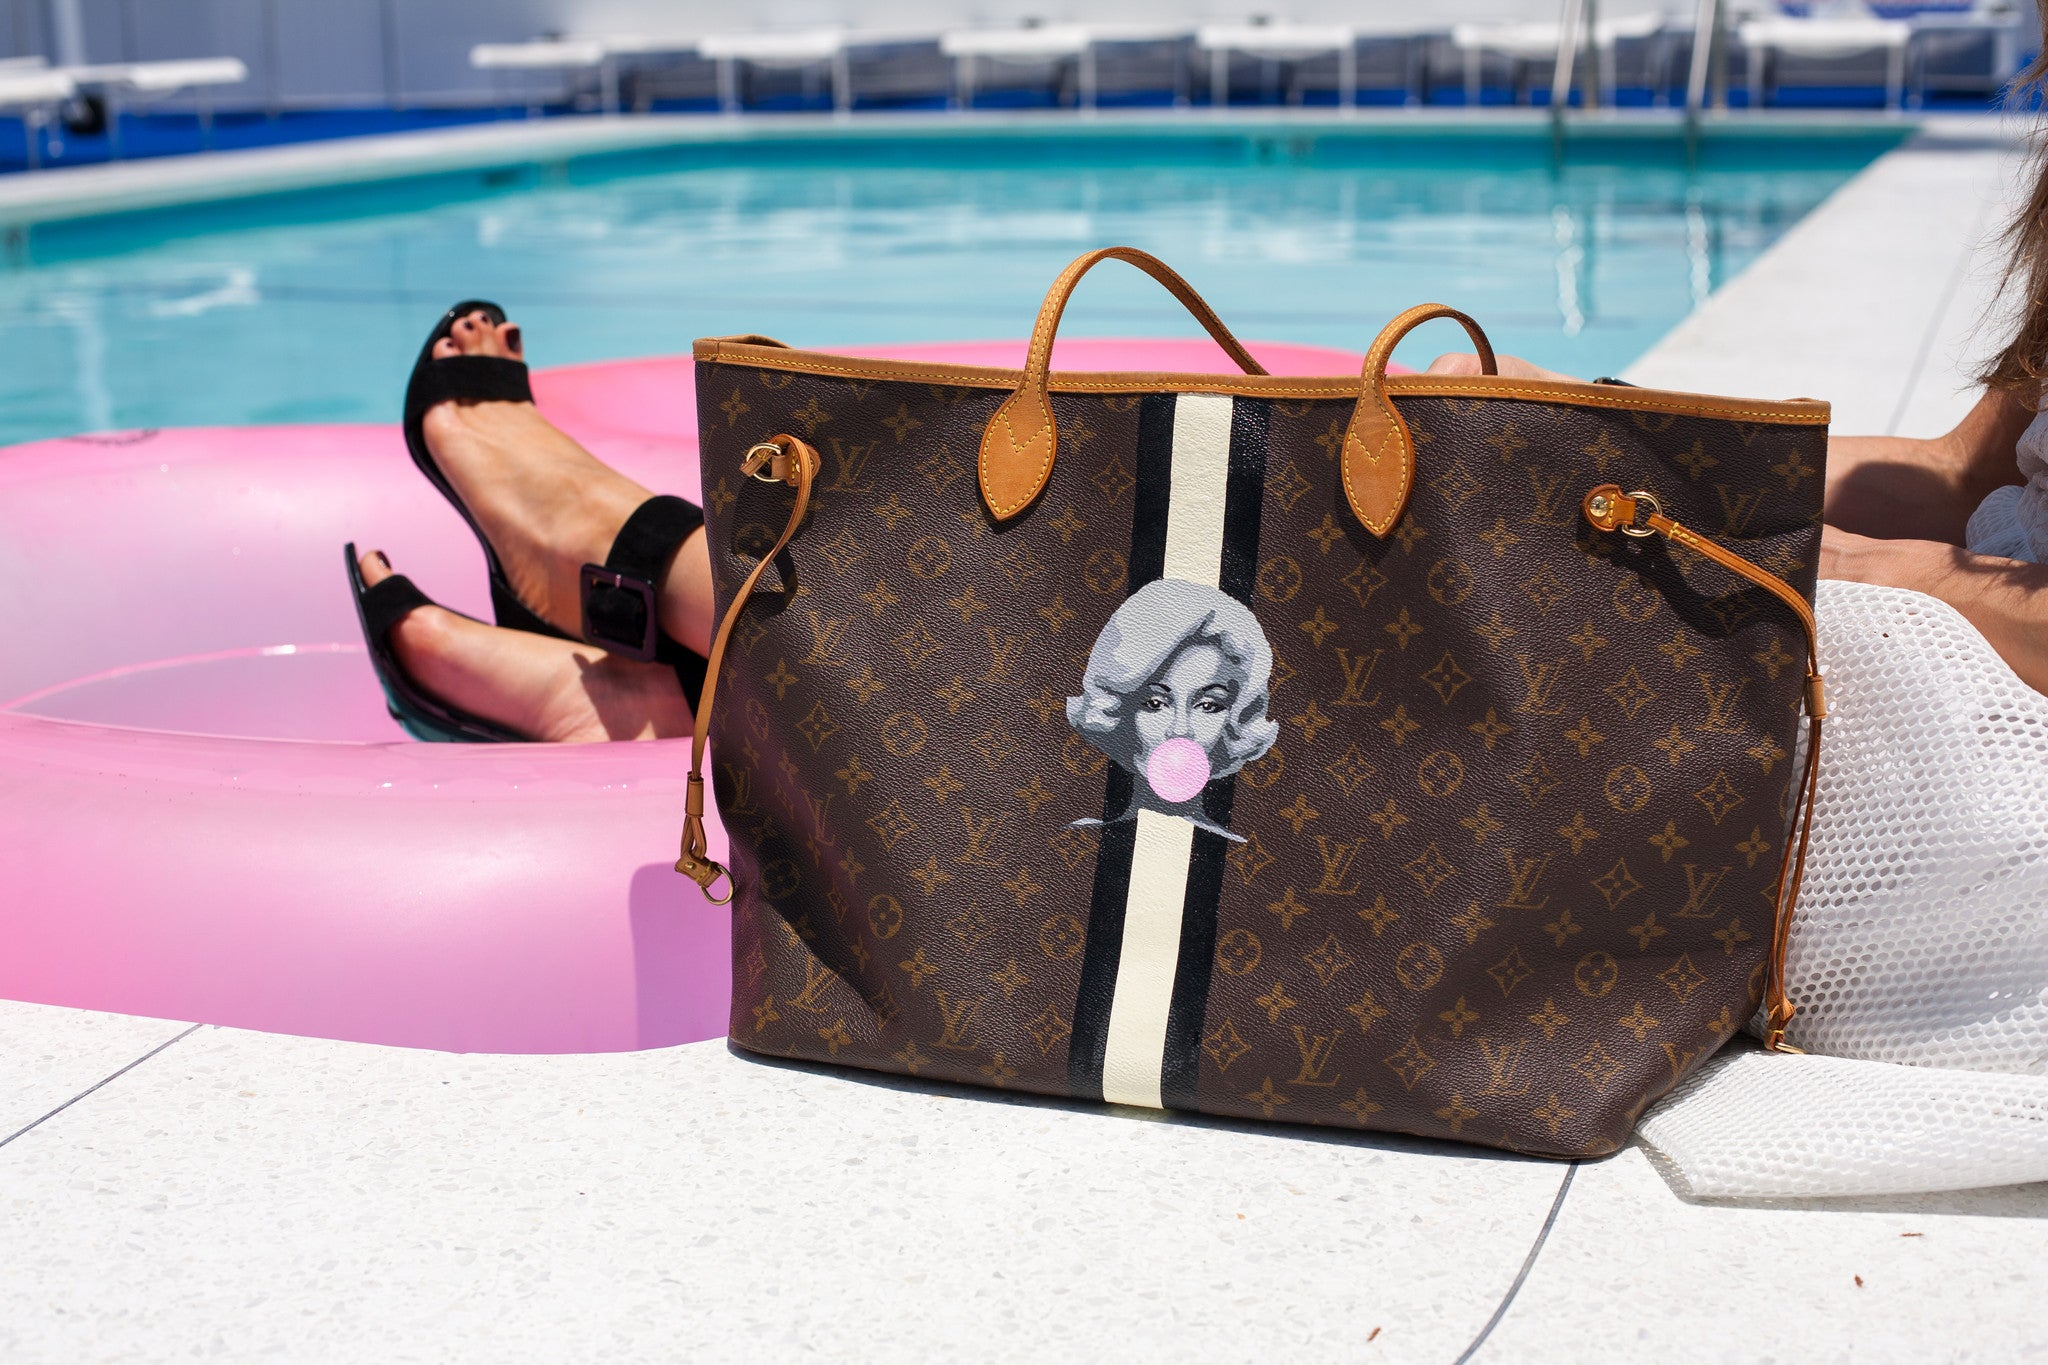 Louis Vuitton Neverfull - Marilyn Monroe Bubblegum